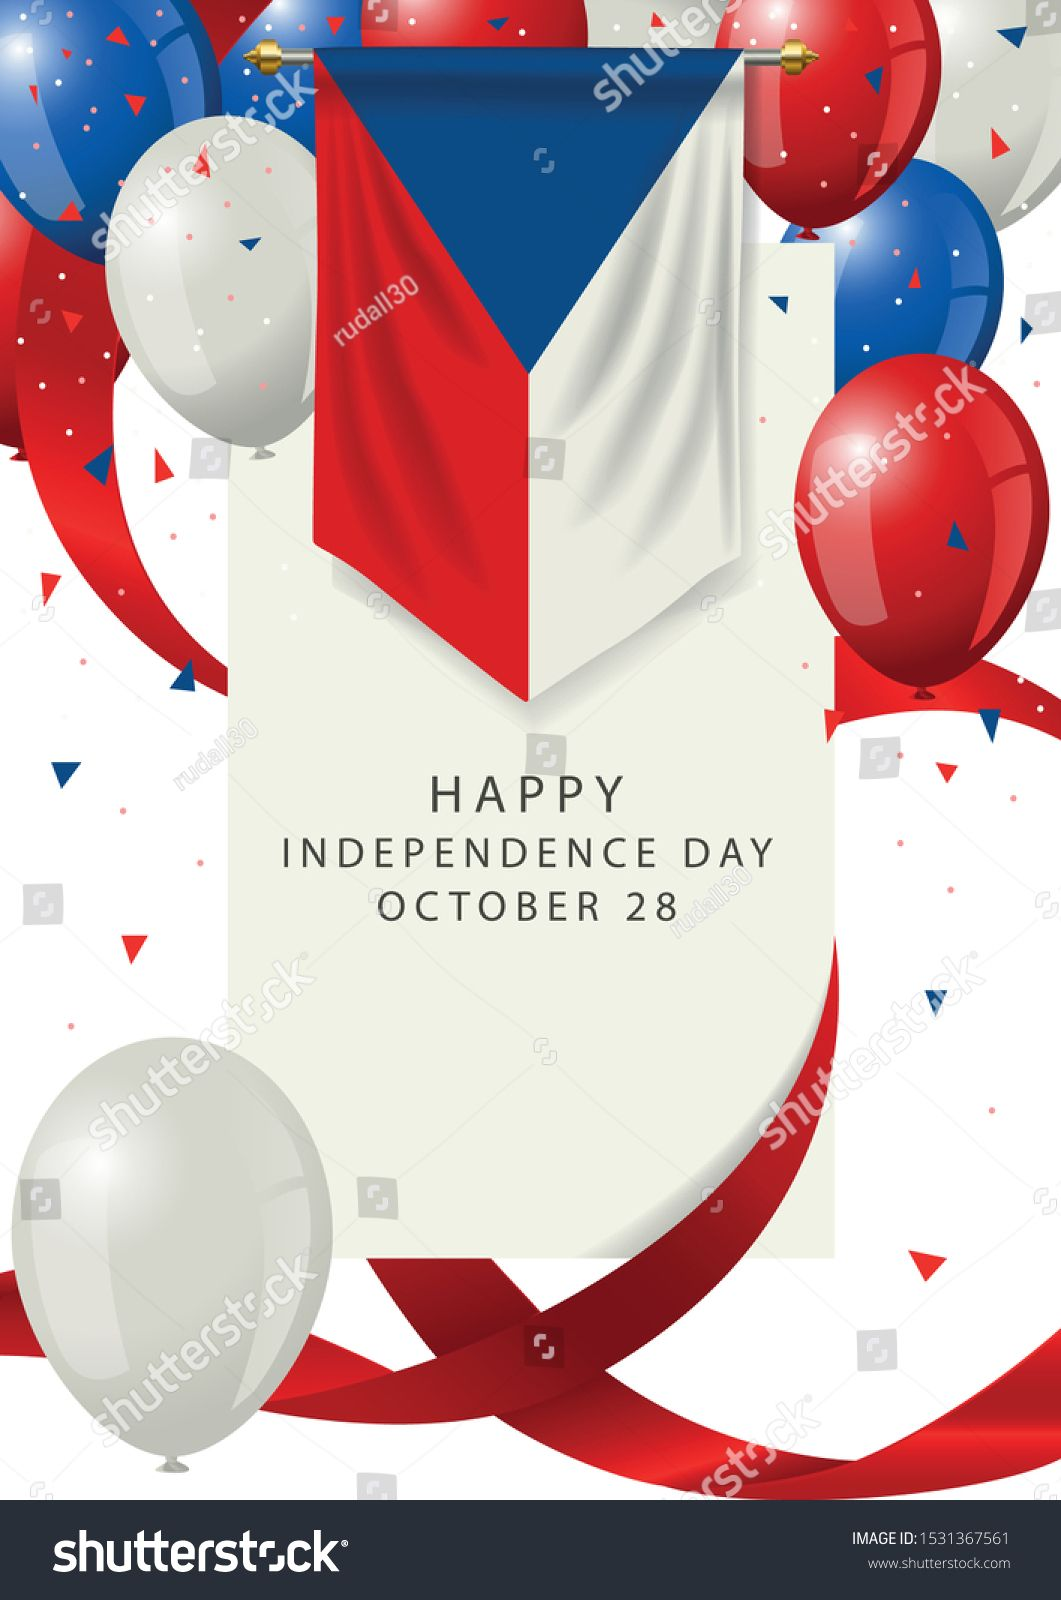 Czech Republic independence day greeting card Czech Republic holiday on 28th of October Czech Republic insignia with decorative balloons and ribbons